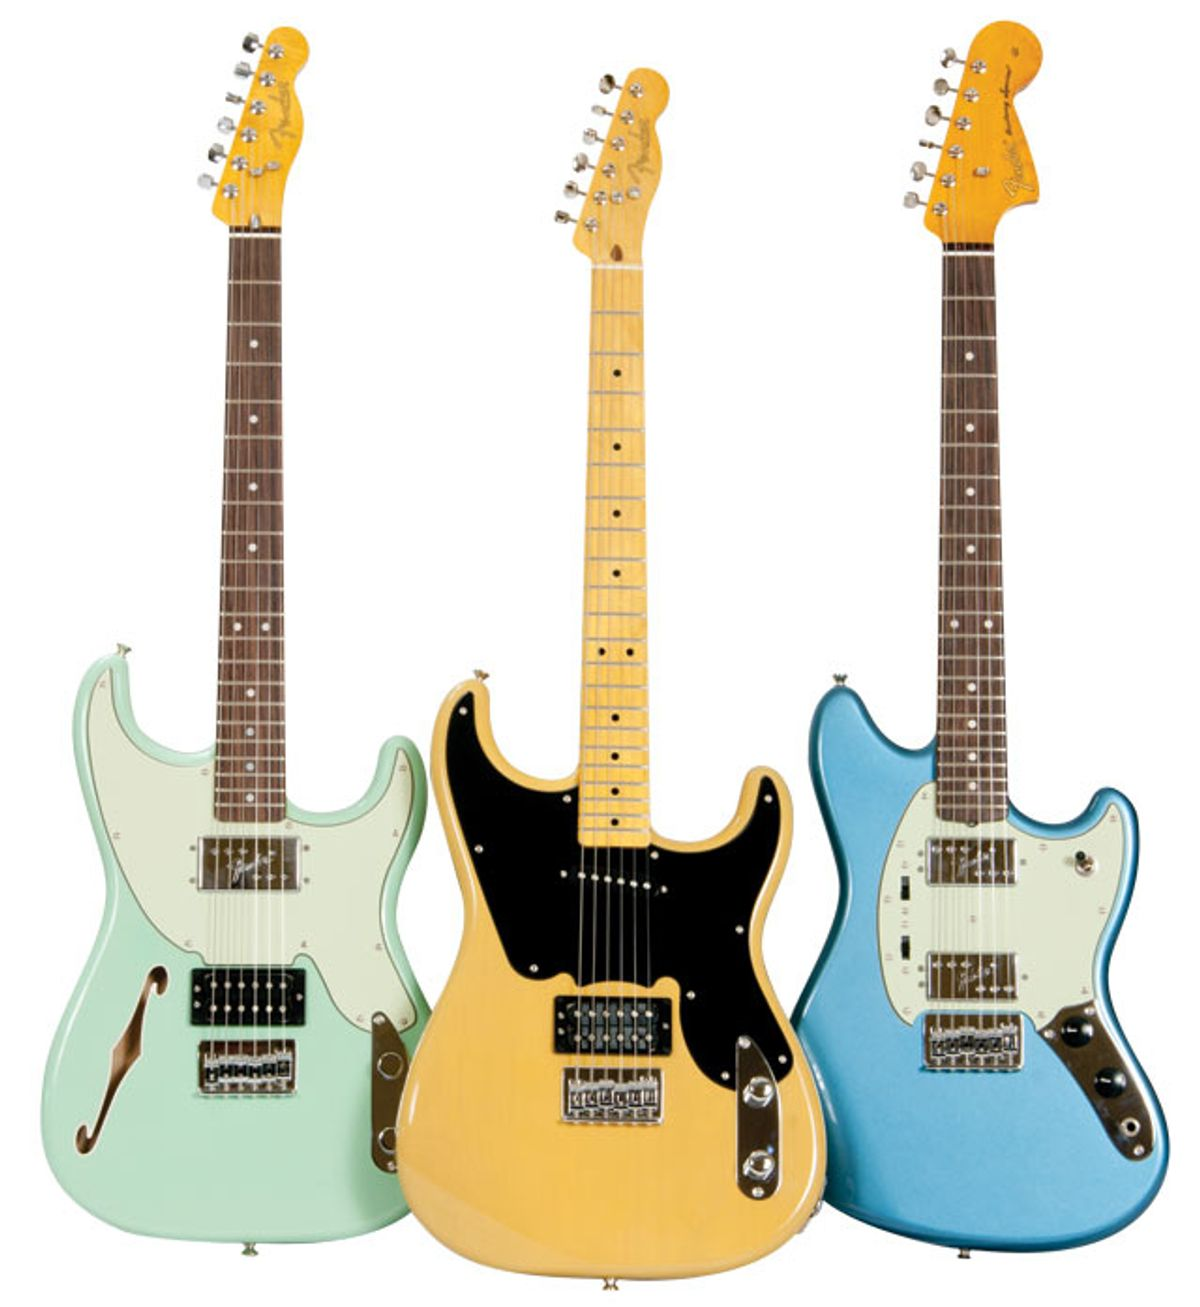 Fender Pawn Shop Series '51, '72, and Mustang Special Guitar Reviews